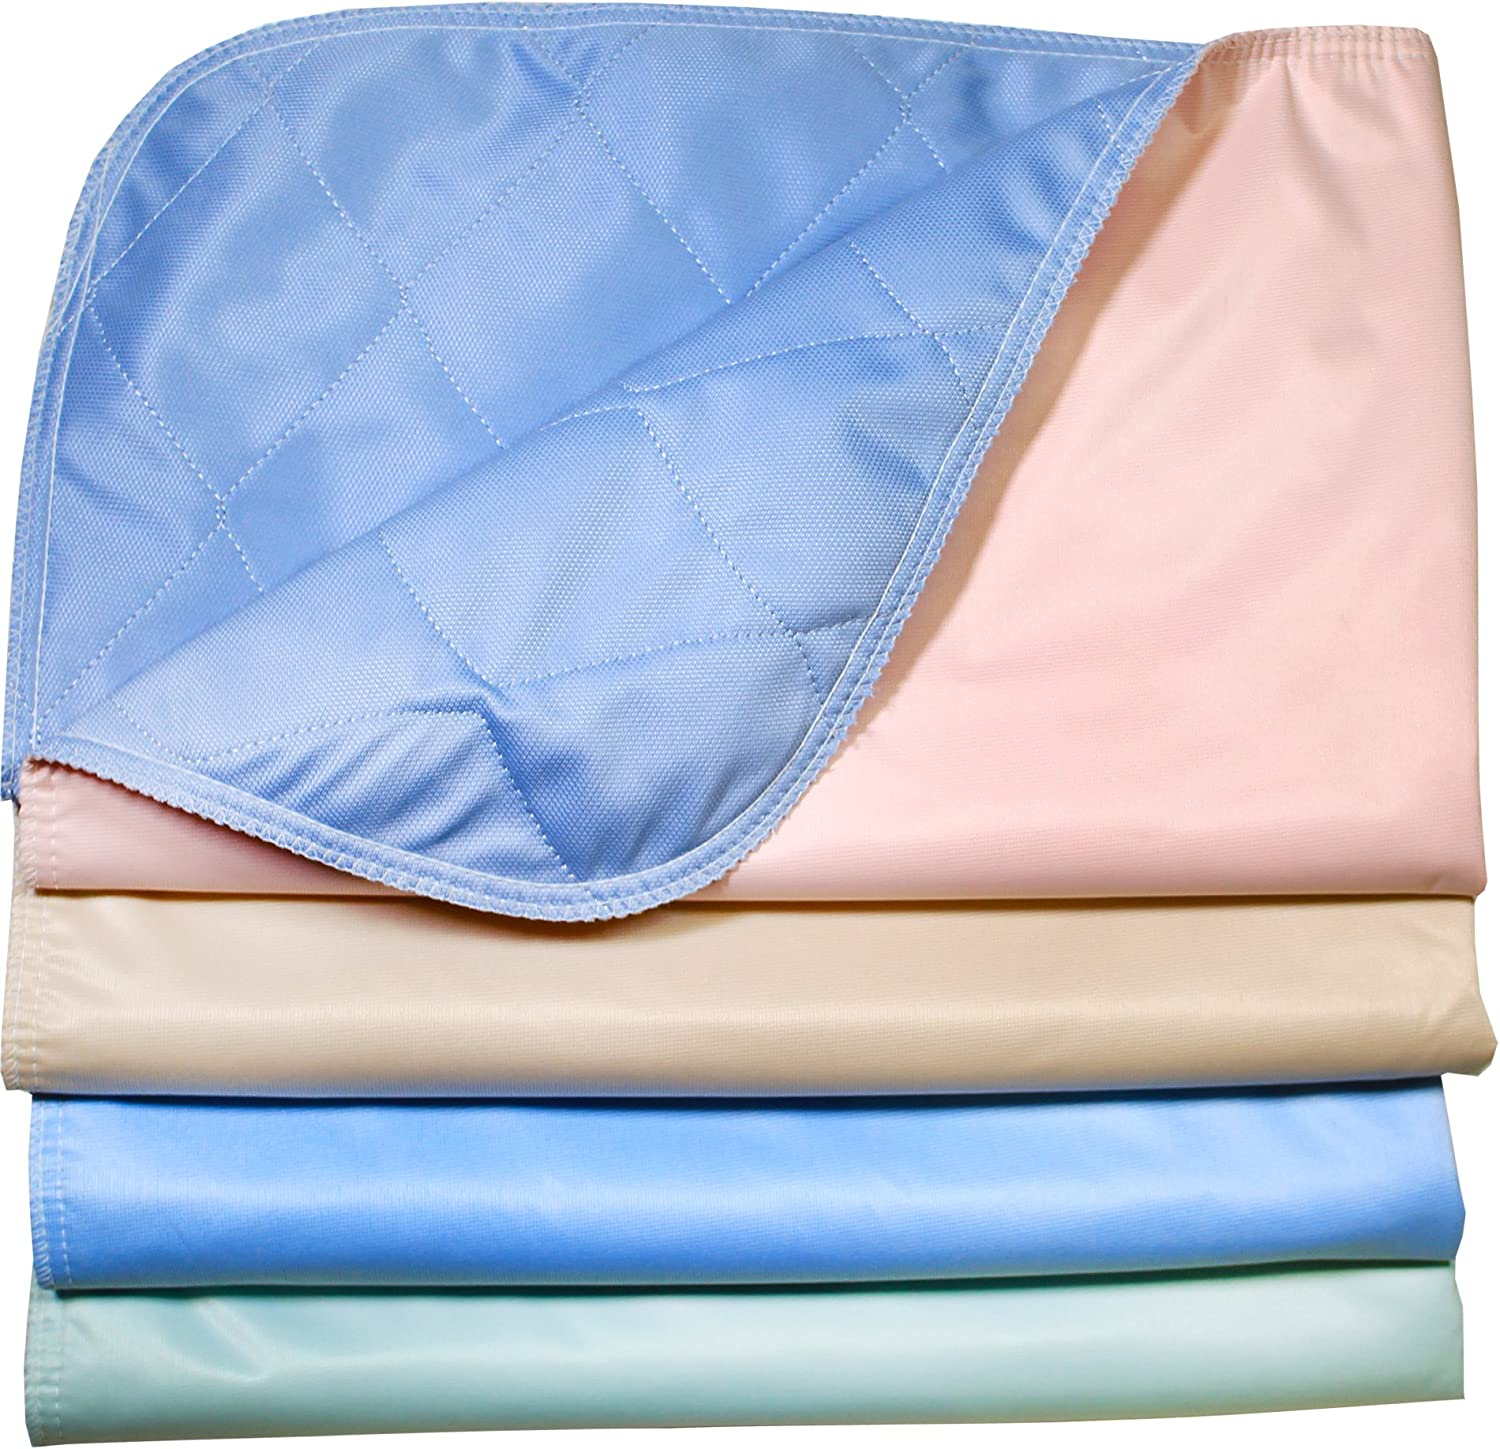 Pack of 4  Reusable Stain Resistant Quick Absorbent Washable Large Dog Puppy Training Travel Pee Pads  Size 24 x 36